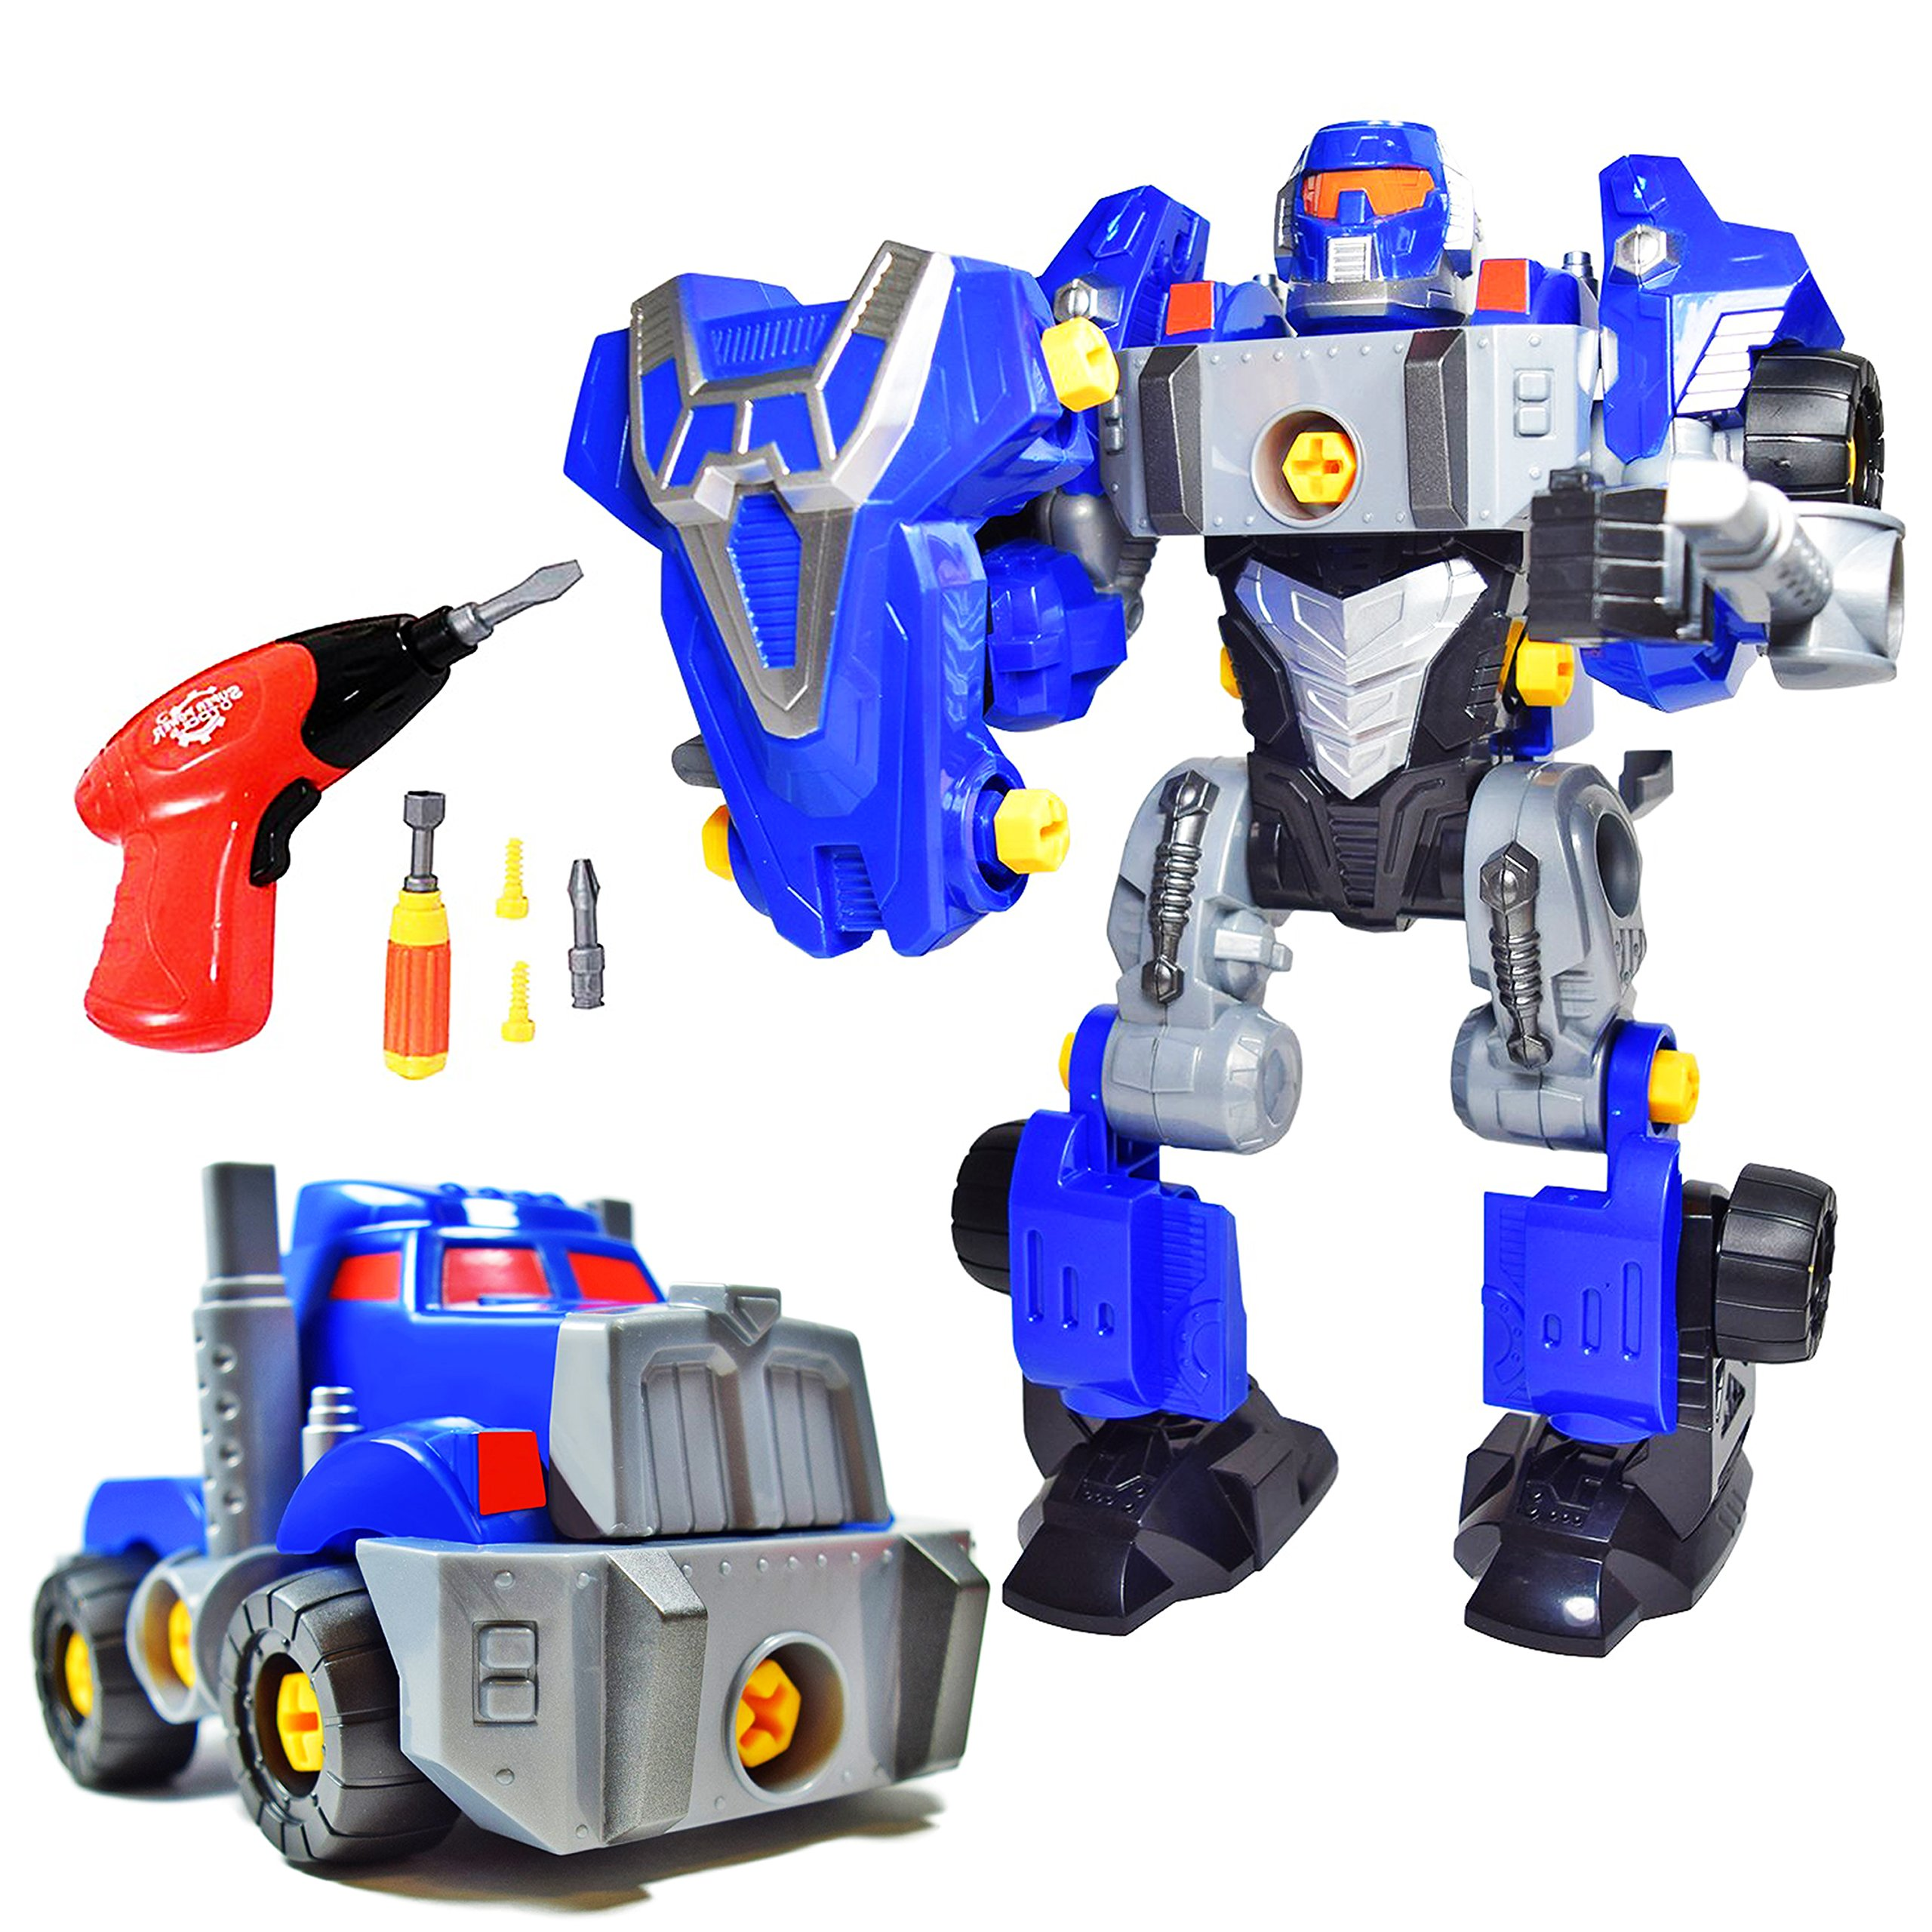 CoolToys Take Apart Robot Toy for Toddlers and Kids, 42 Piece Robot Building Kit with Electric Toy Drill and Screwdriver